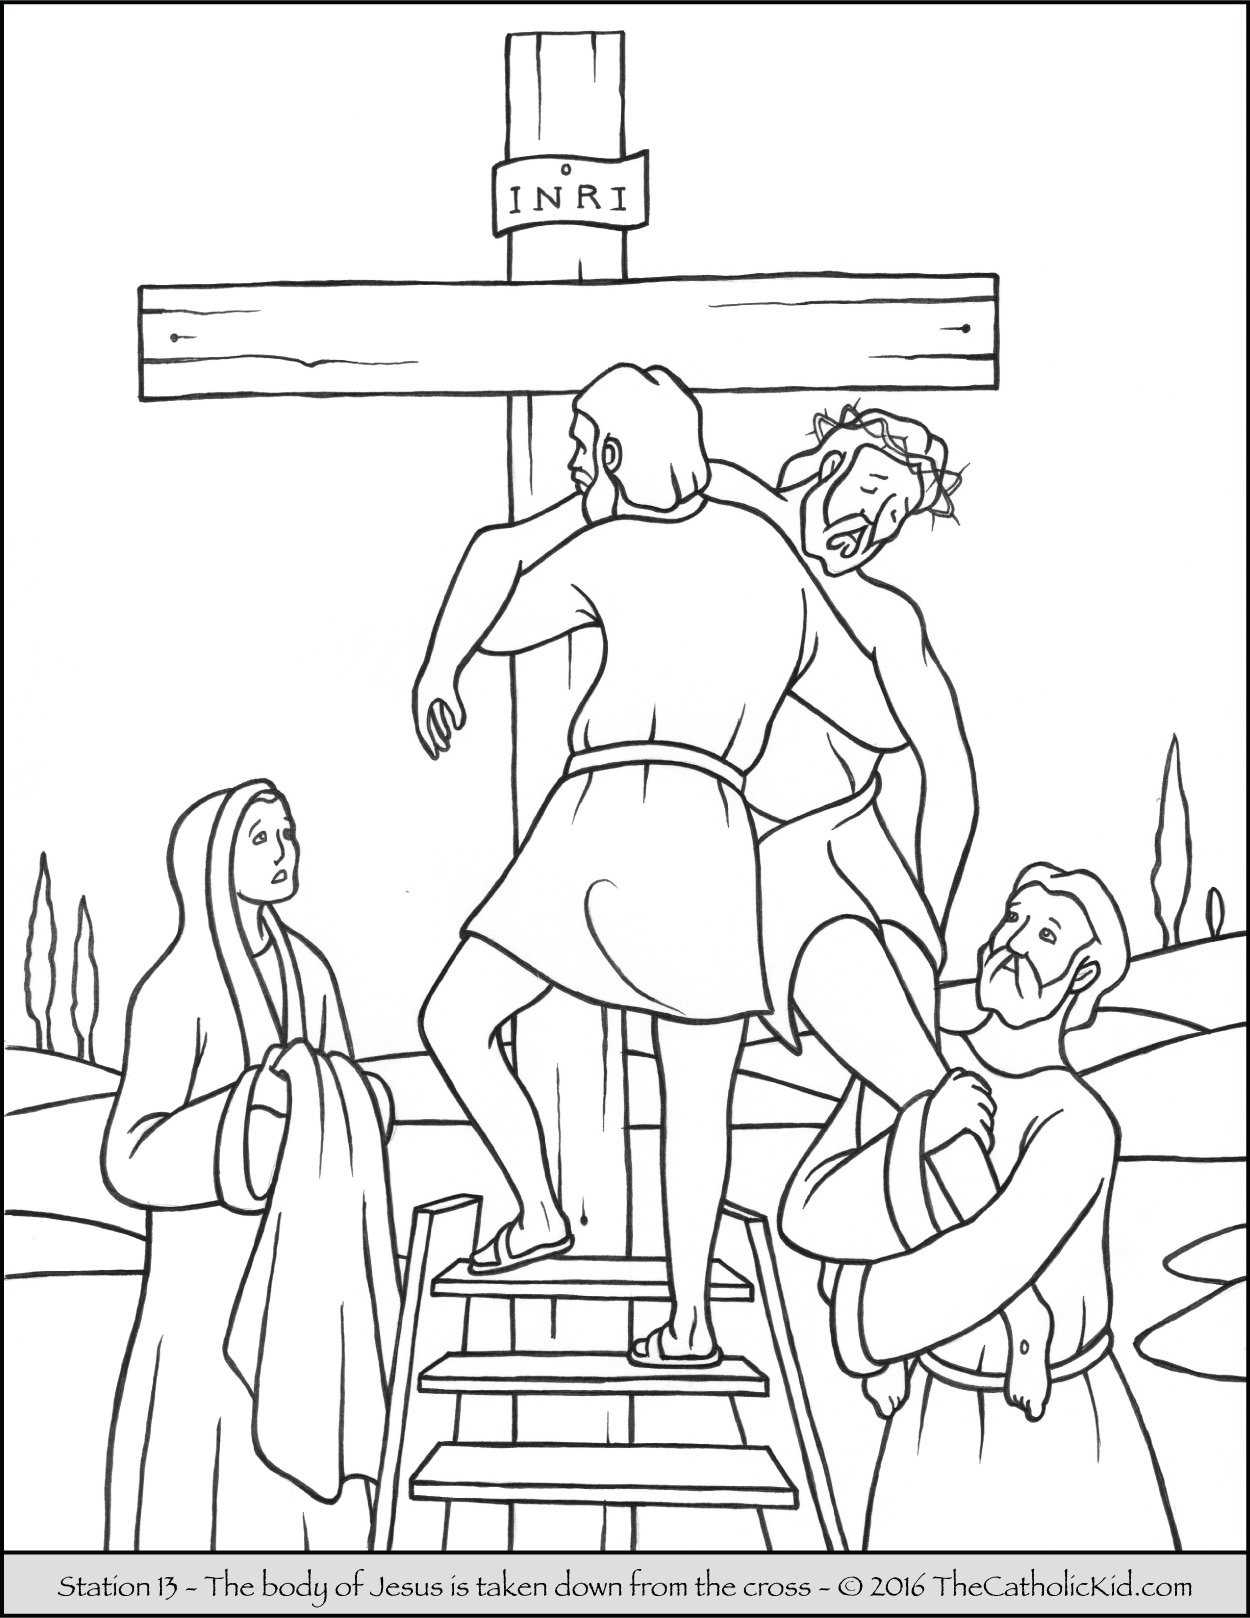 Stations of the Cross Coloring Pages 13 - The body of Jesus is taken down from the cross